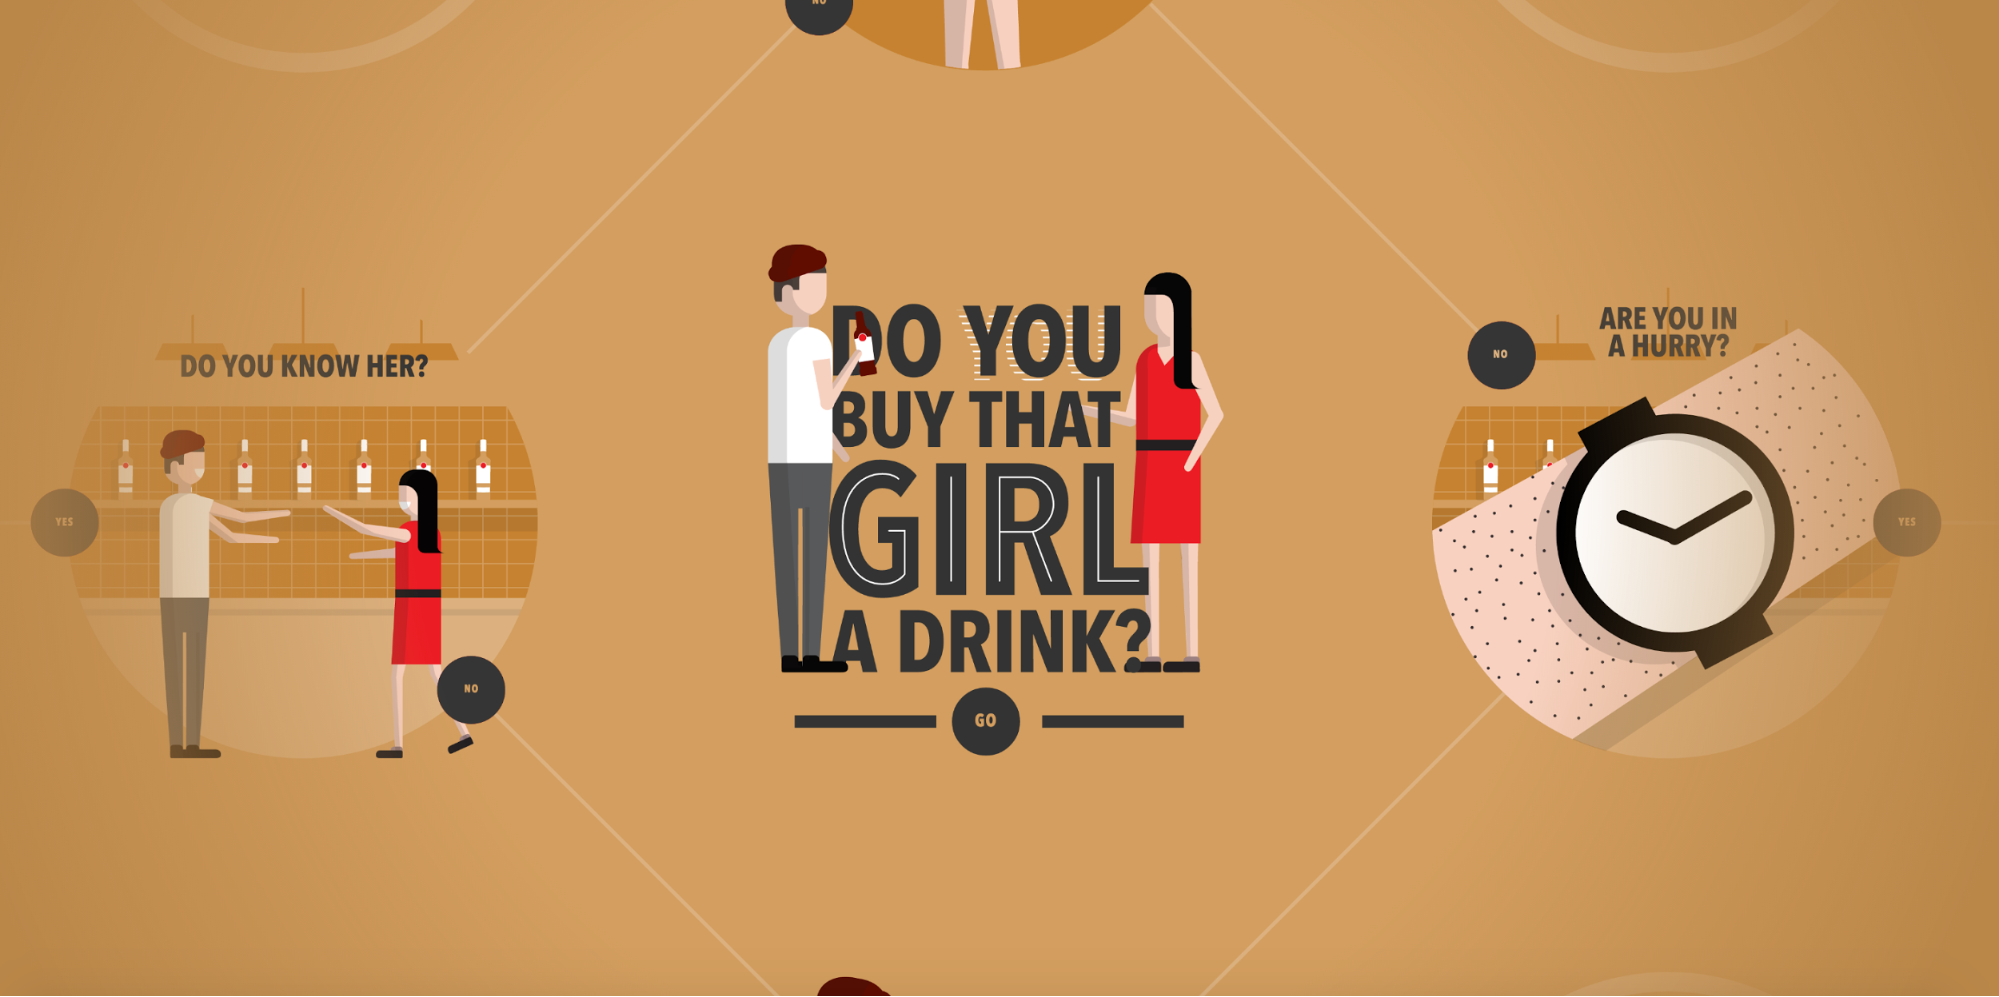 Do you buy that girl a drink: an interactive decision tree